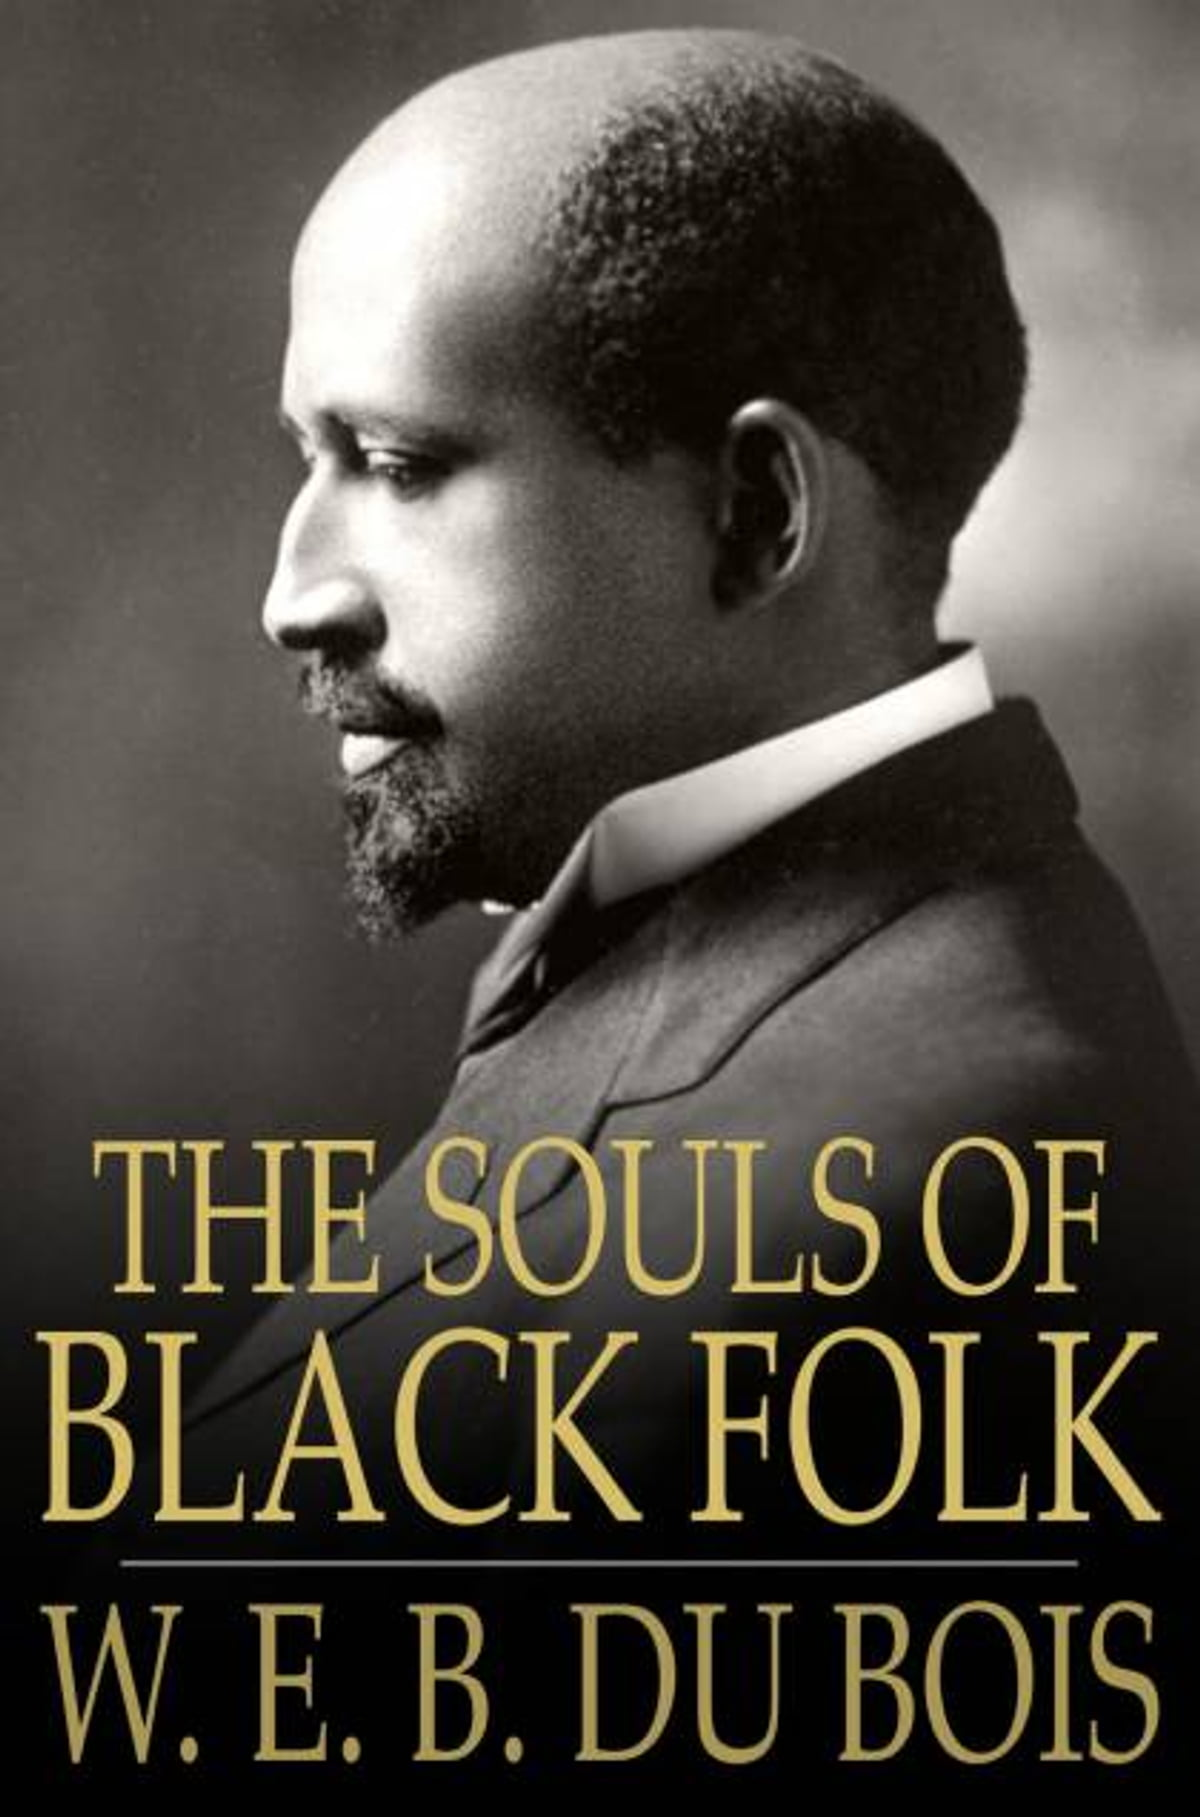 the souls of black folk essays web dubois essay a history of beef between black writers artists help essay writing the alchemist